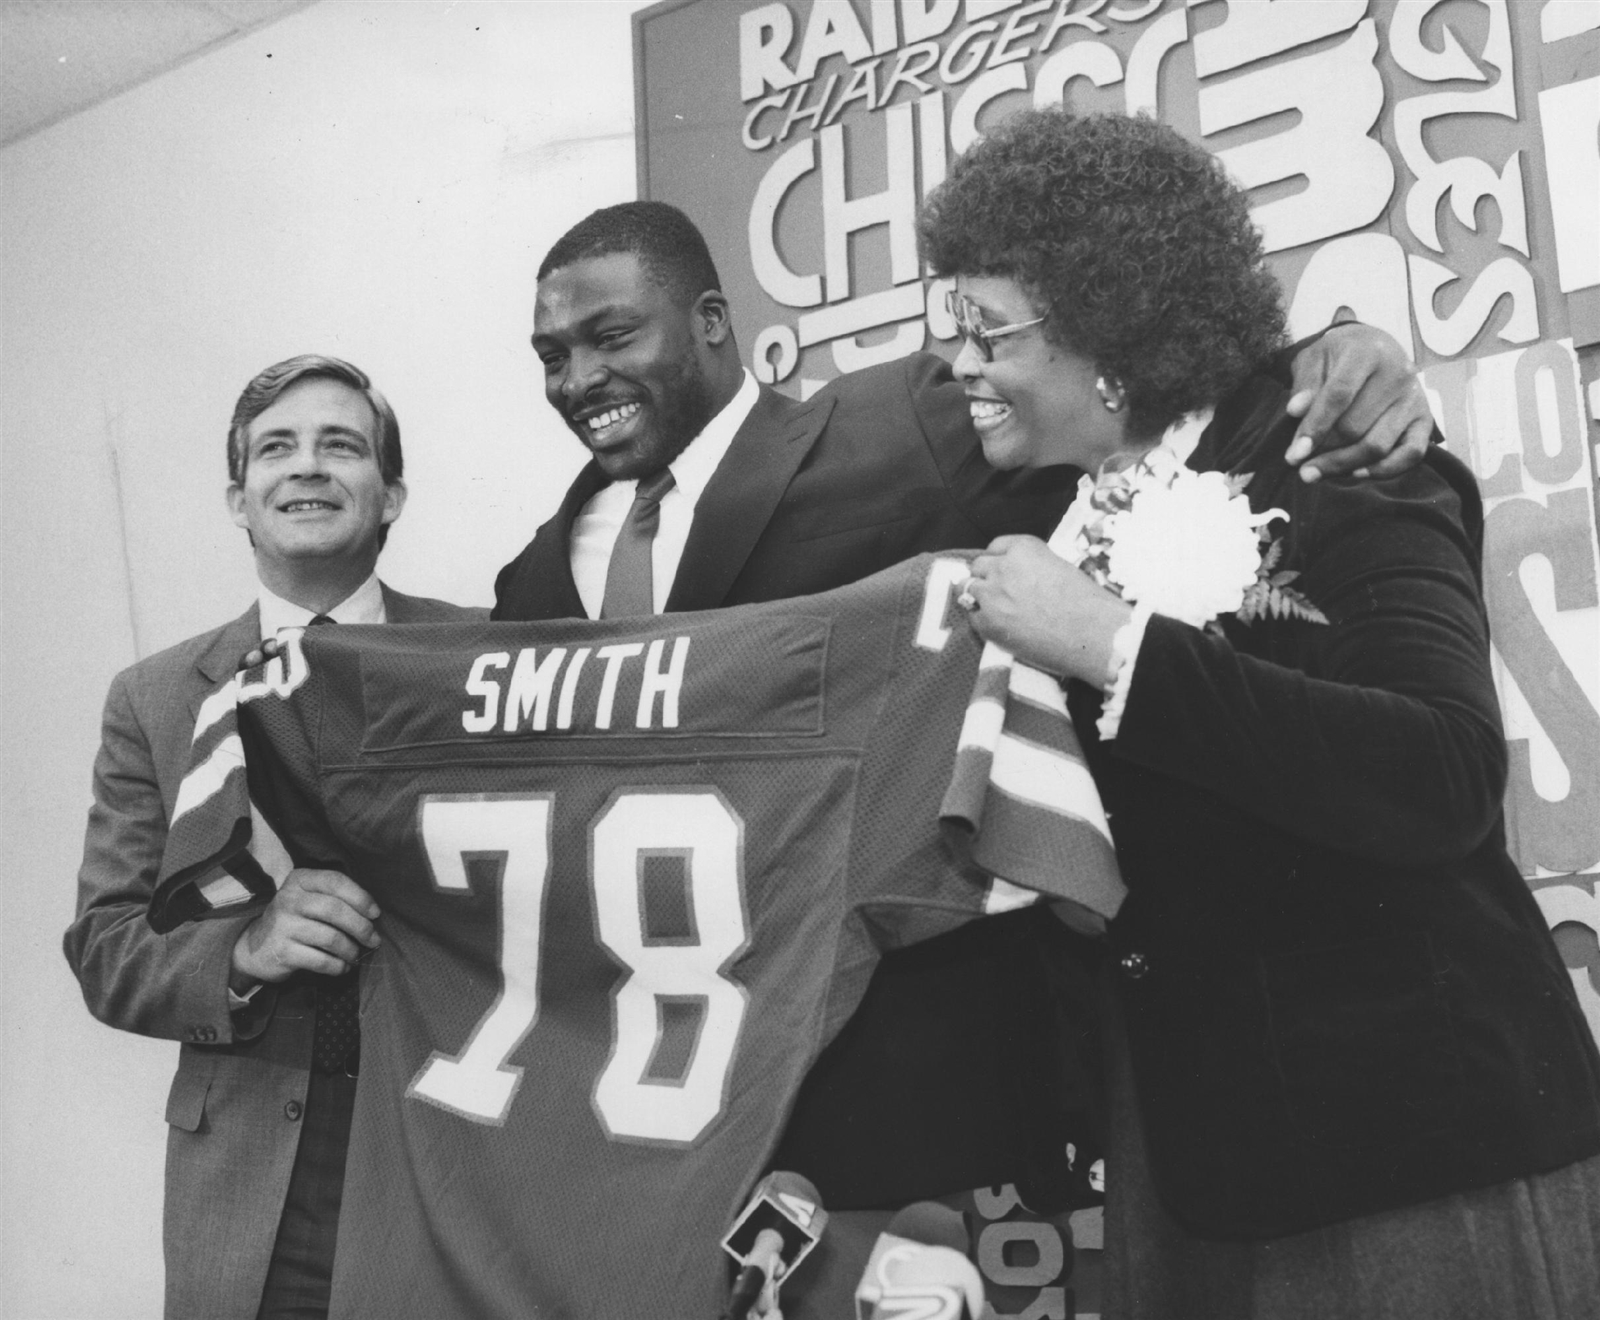 The Bills knew a certain defensive end out of Virginia Tech had great potential when they drafted him No. 1 overall in the 1985 NFL Draft. Here Bruce Smith shows off the jersey that would become legendary with coach Kay Stephenson and his mother, Annie Lee. (Buffalo News file photo)